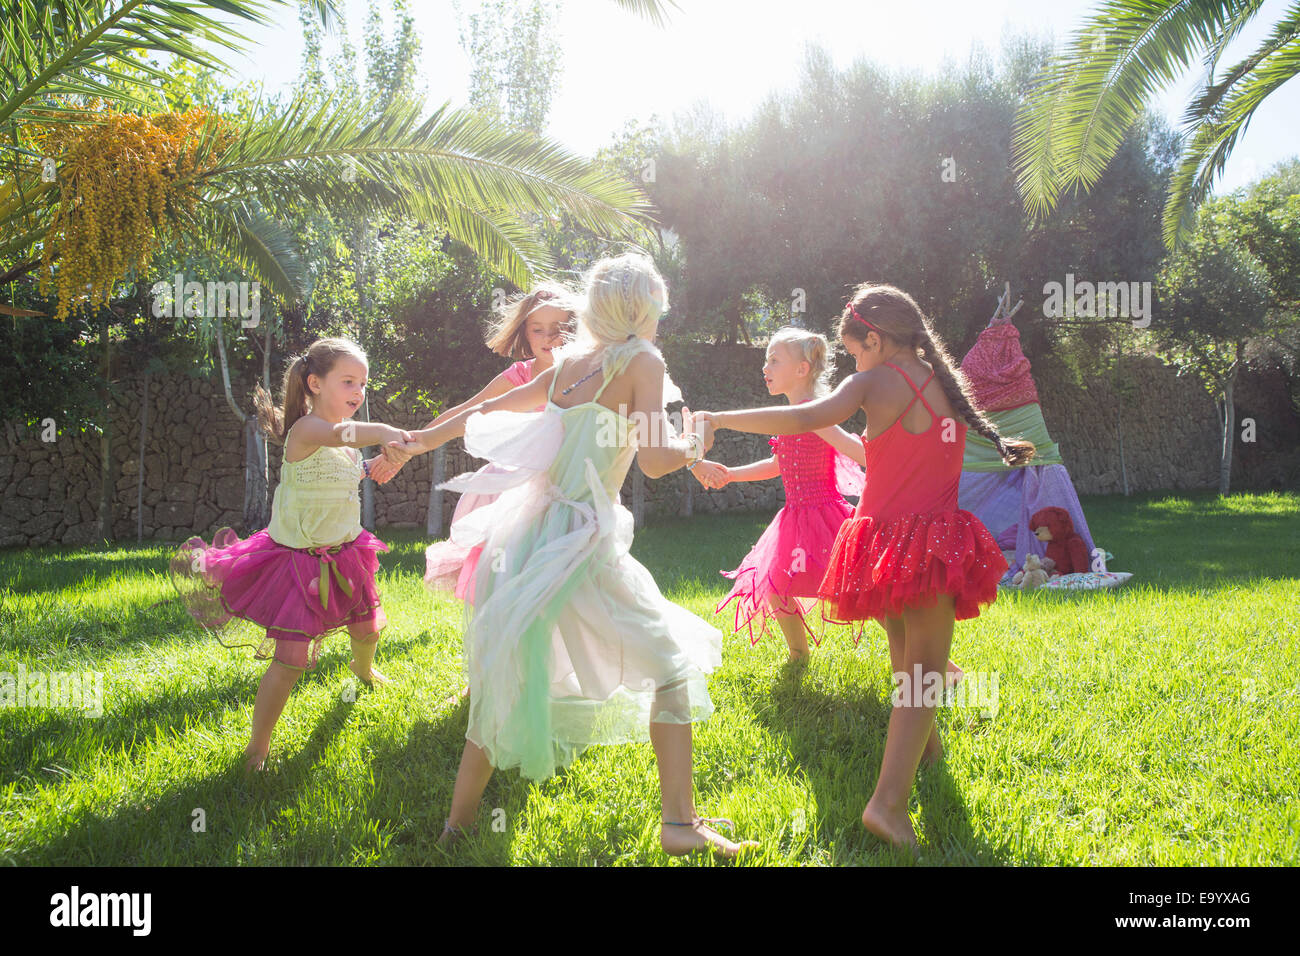 Five energetic girls in fairy costume playing in garden - Stock Image